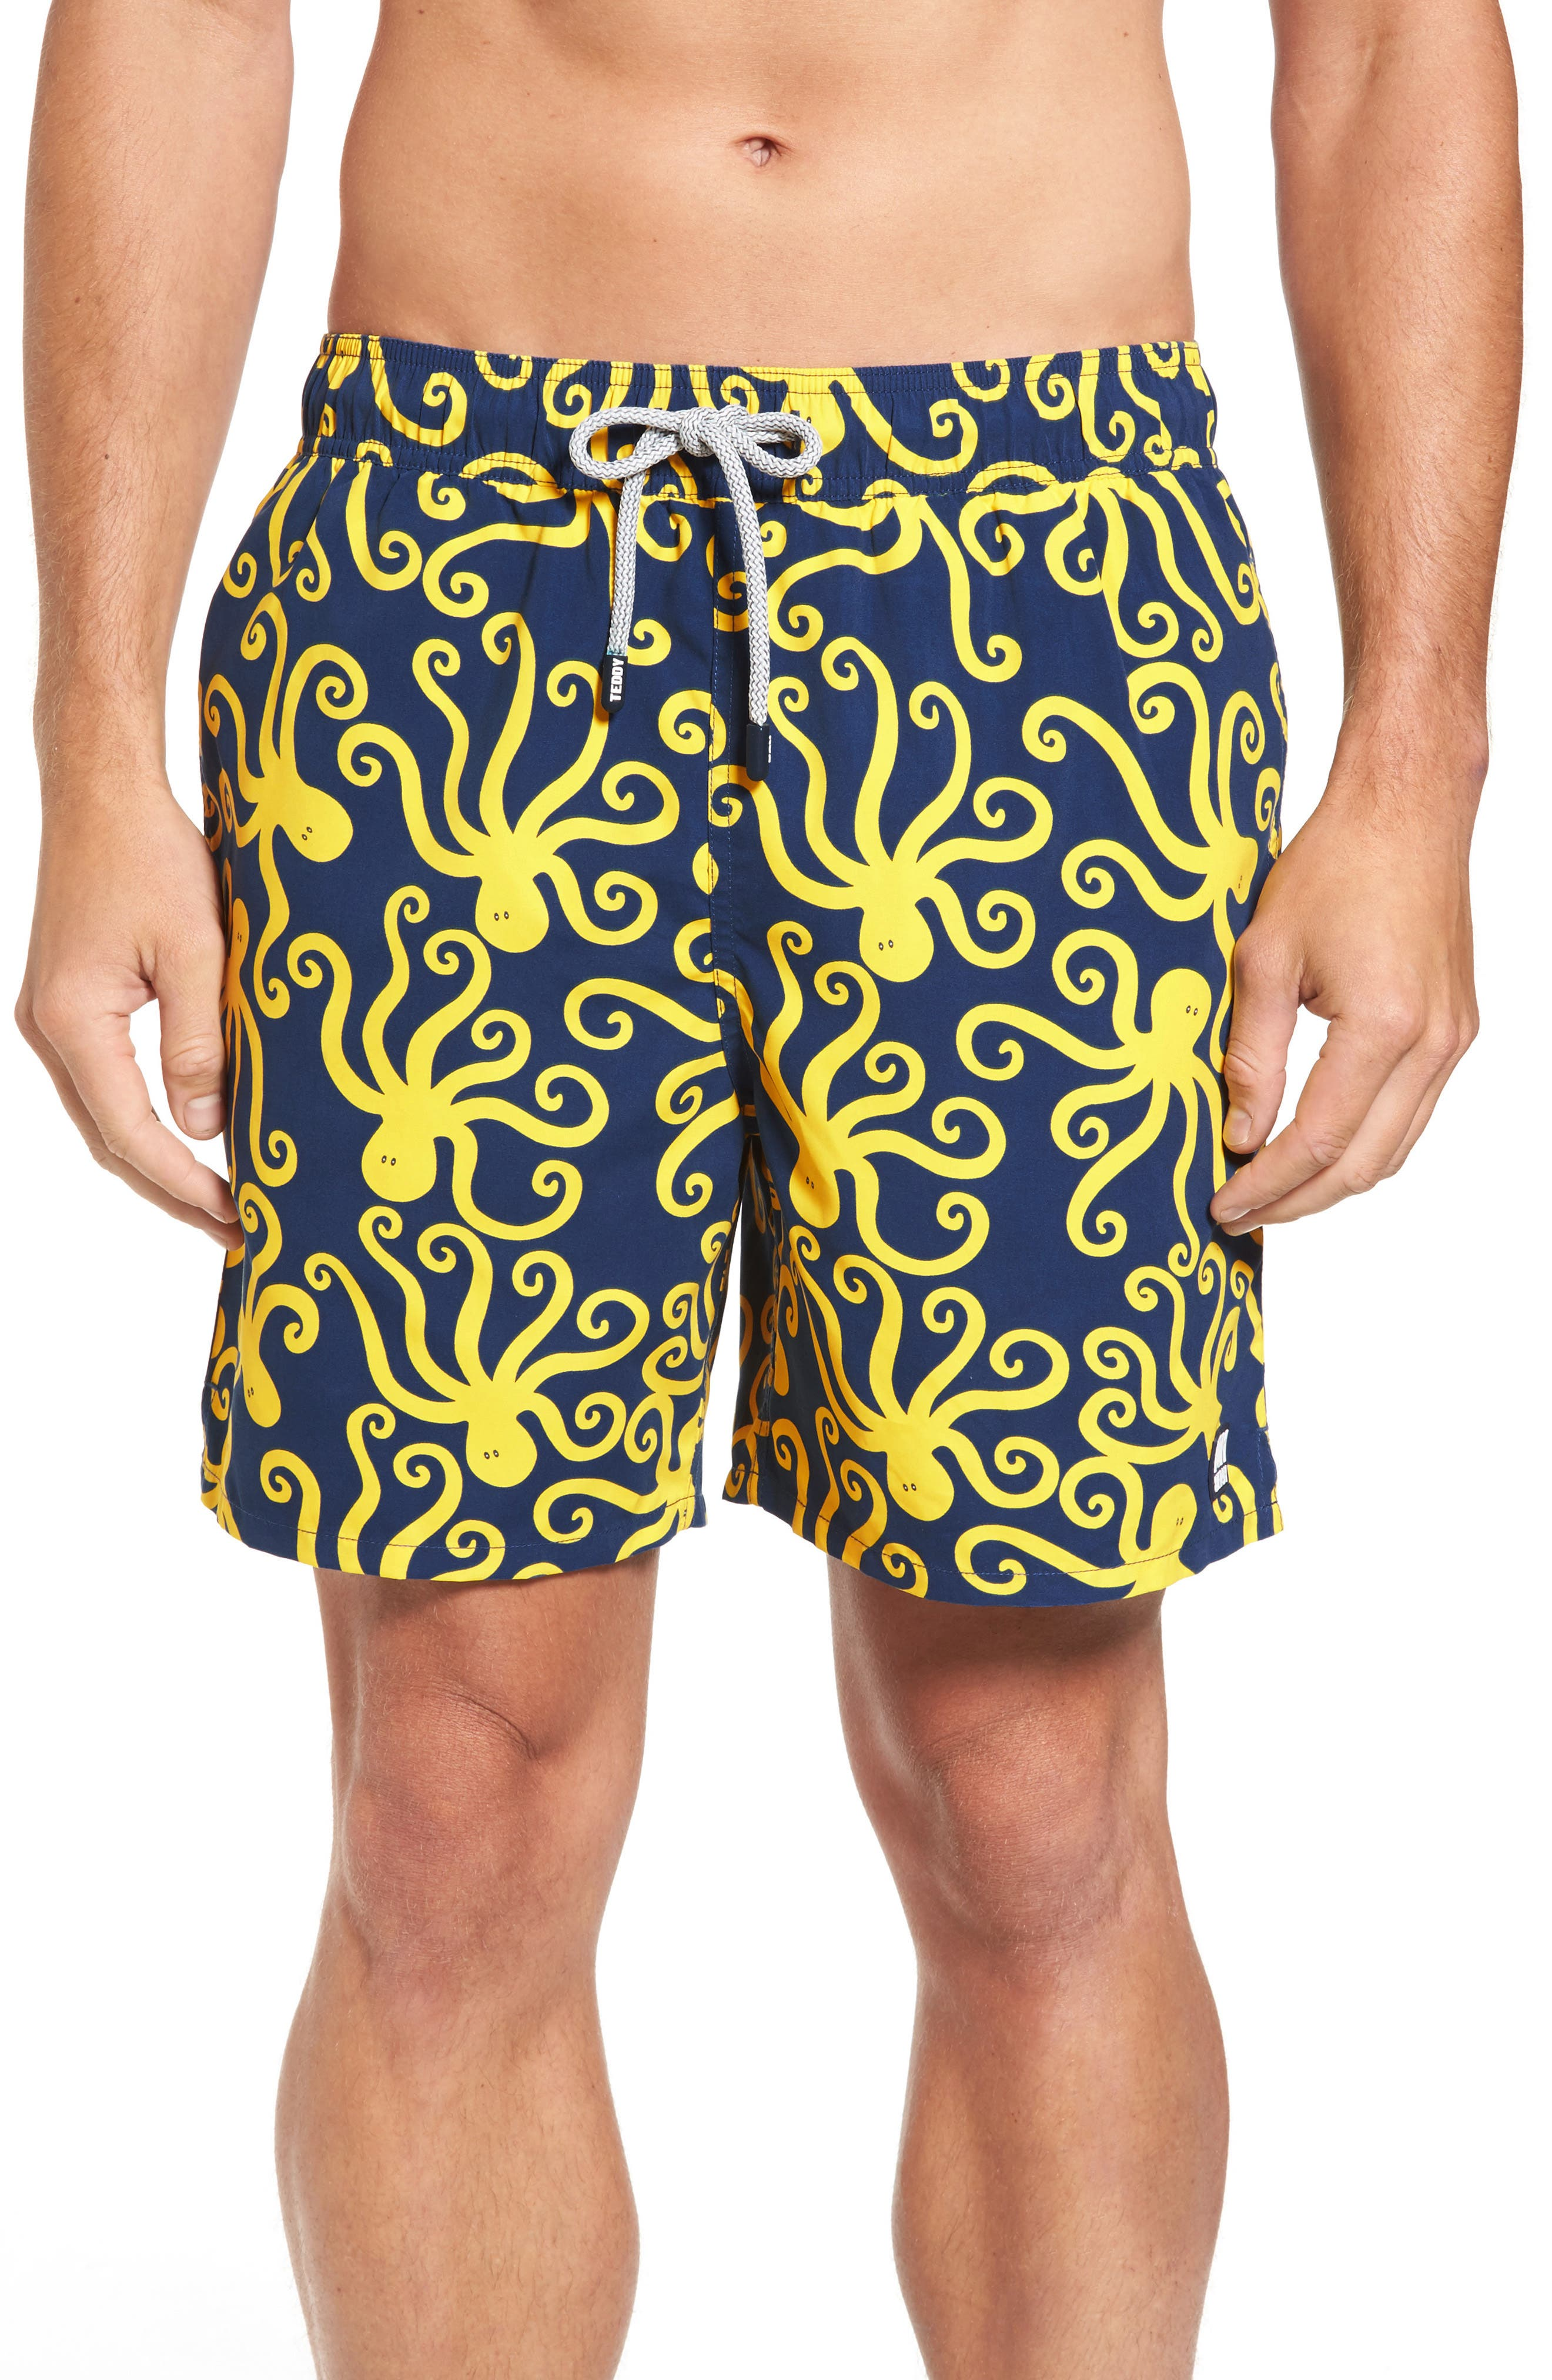 Tom & Teddy Octopus Swim Trunks